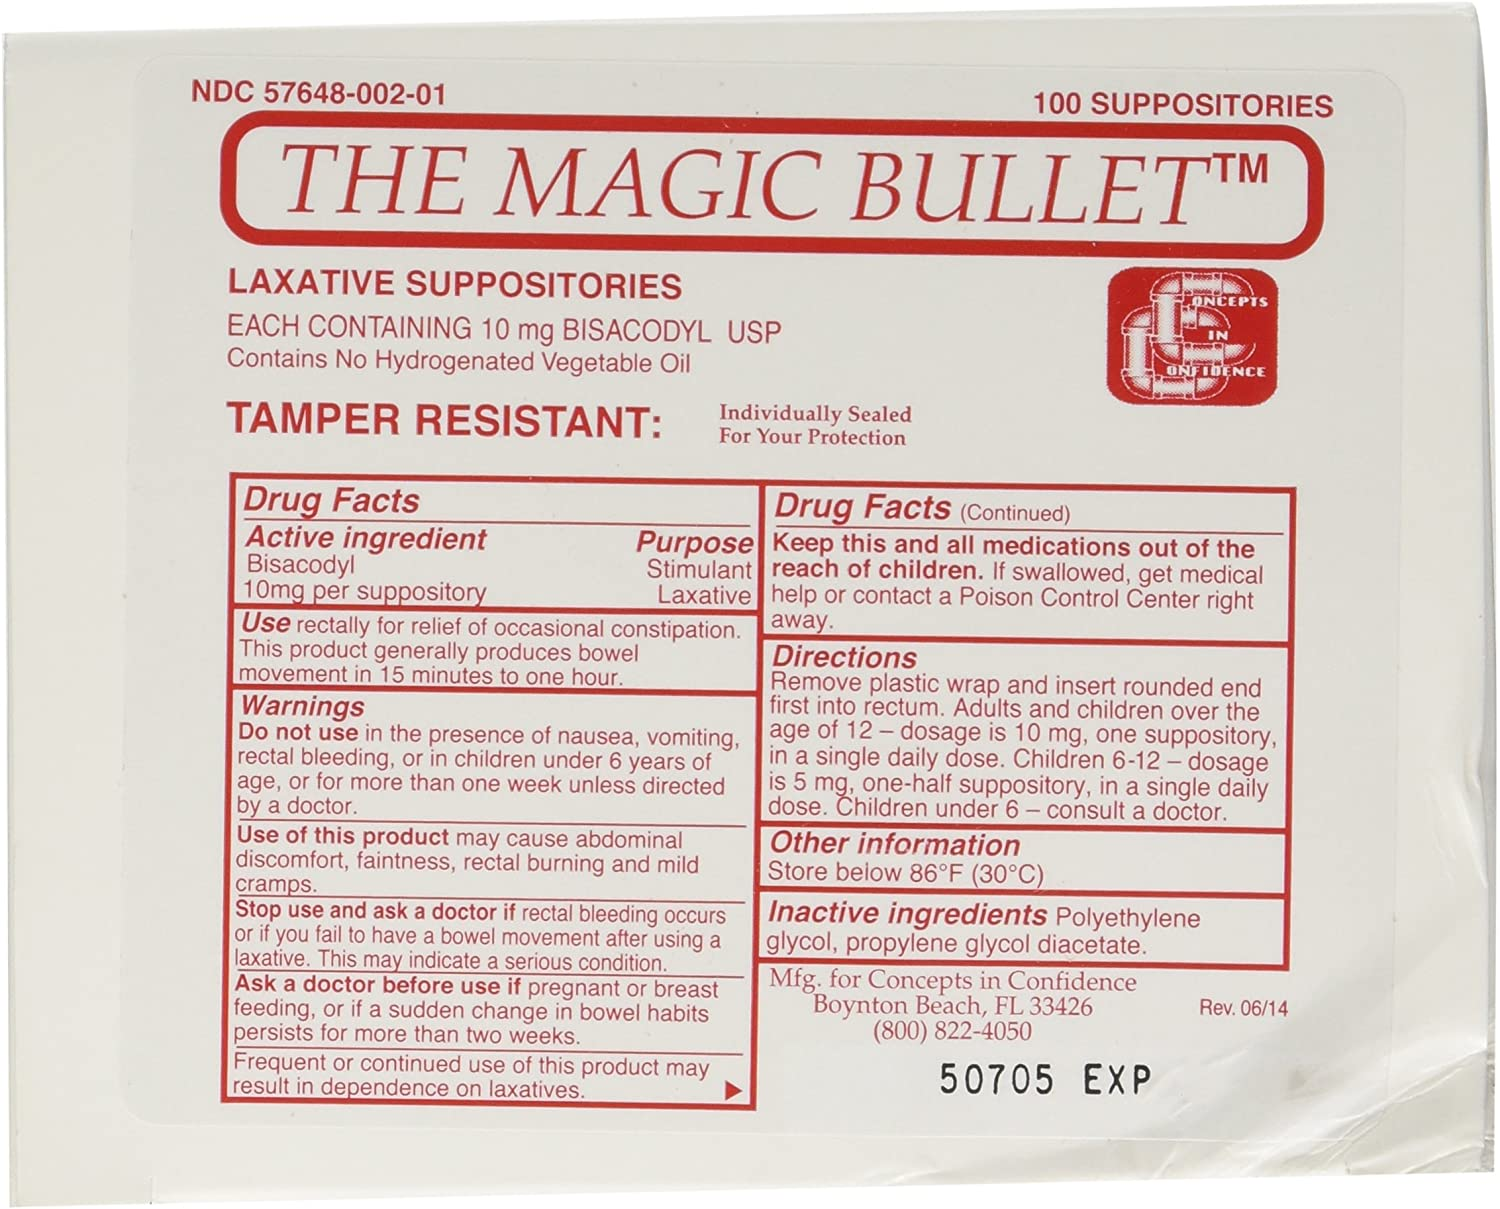 Magic 5 ☆ very Choice popular Bullet Suppository Part No. CCMB100 Concepts Confidence in